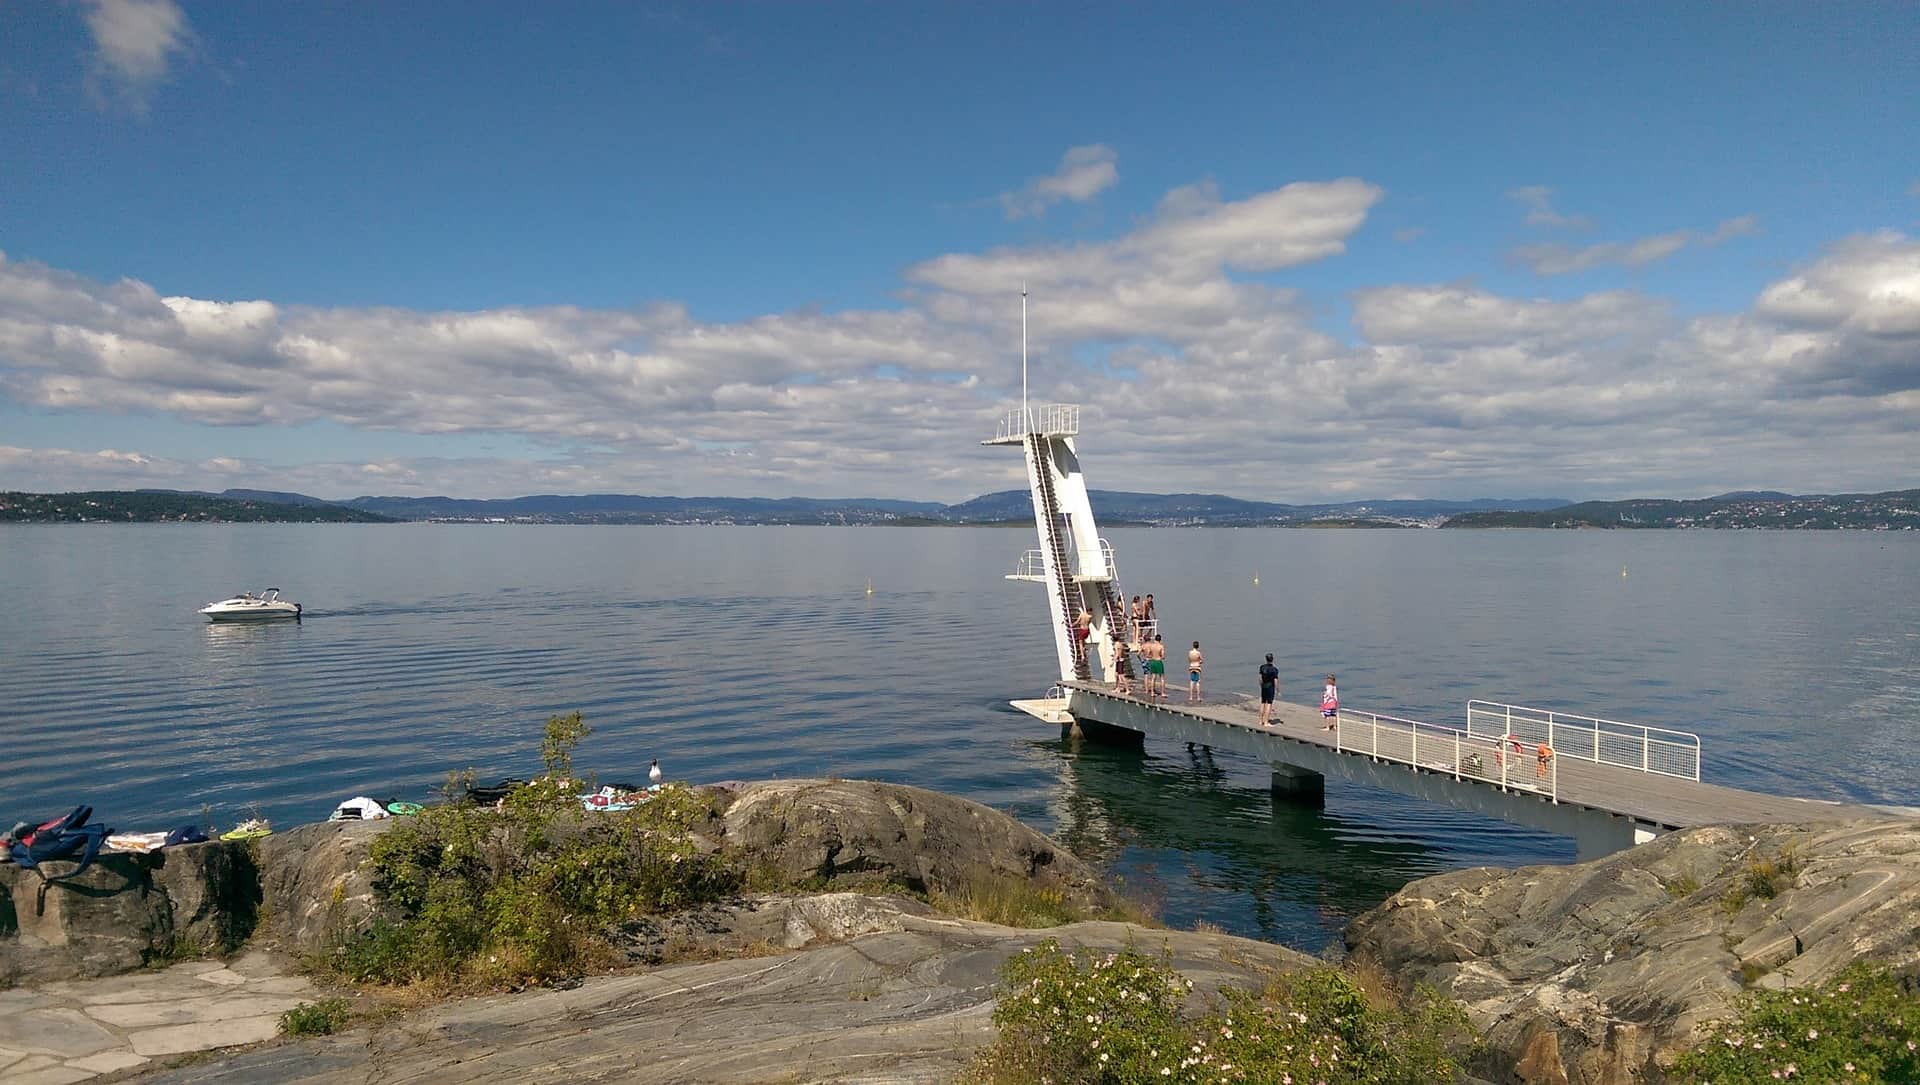 The journey from Fredrikshavn to Oslo leads through the beautiful Oslofjord, the perfect introduction to beautiful Norway